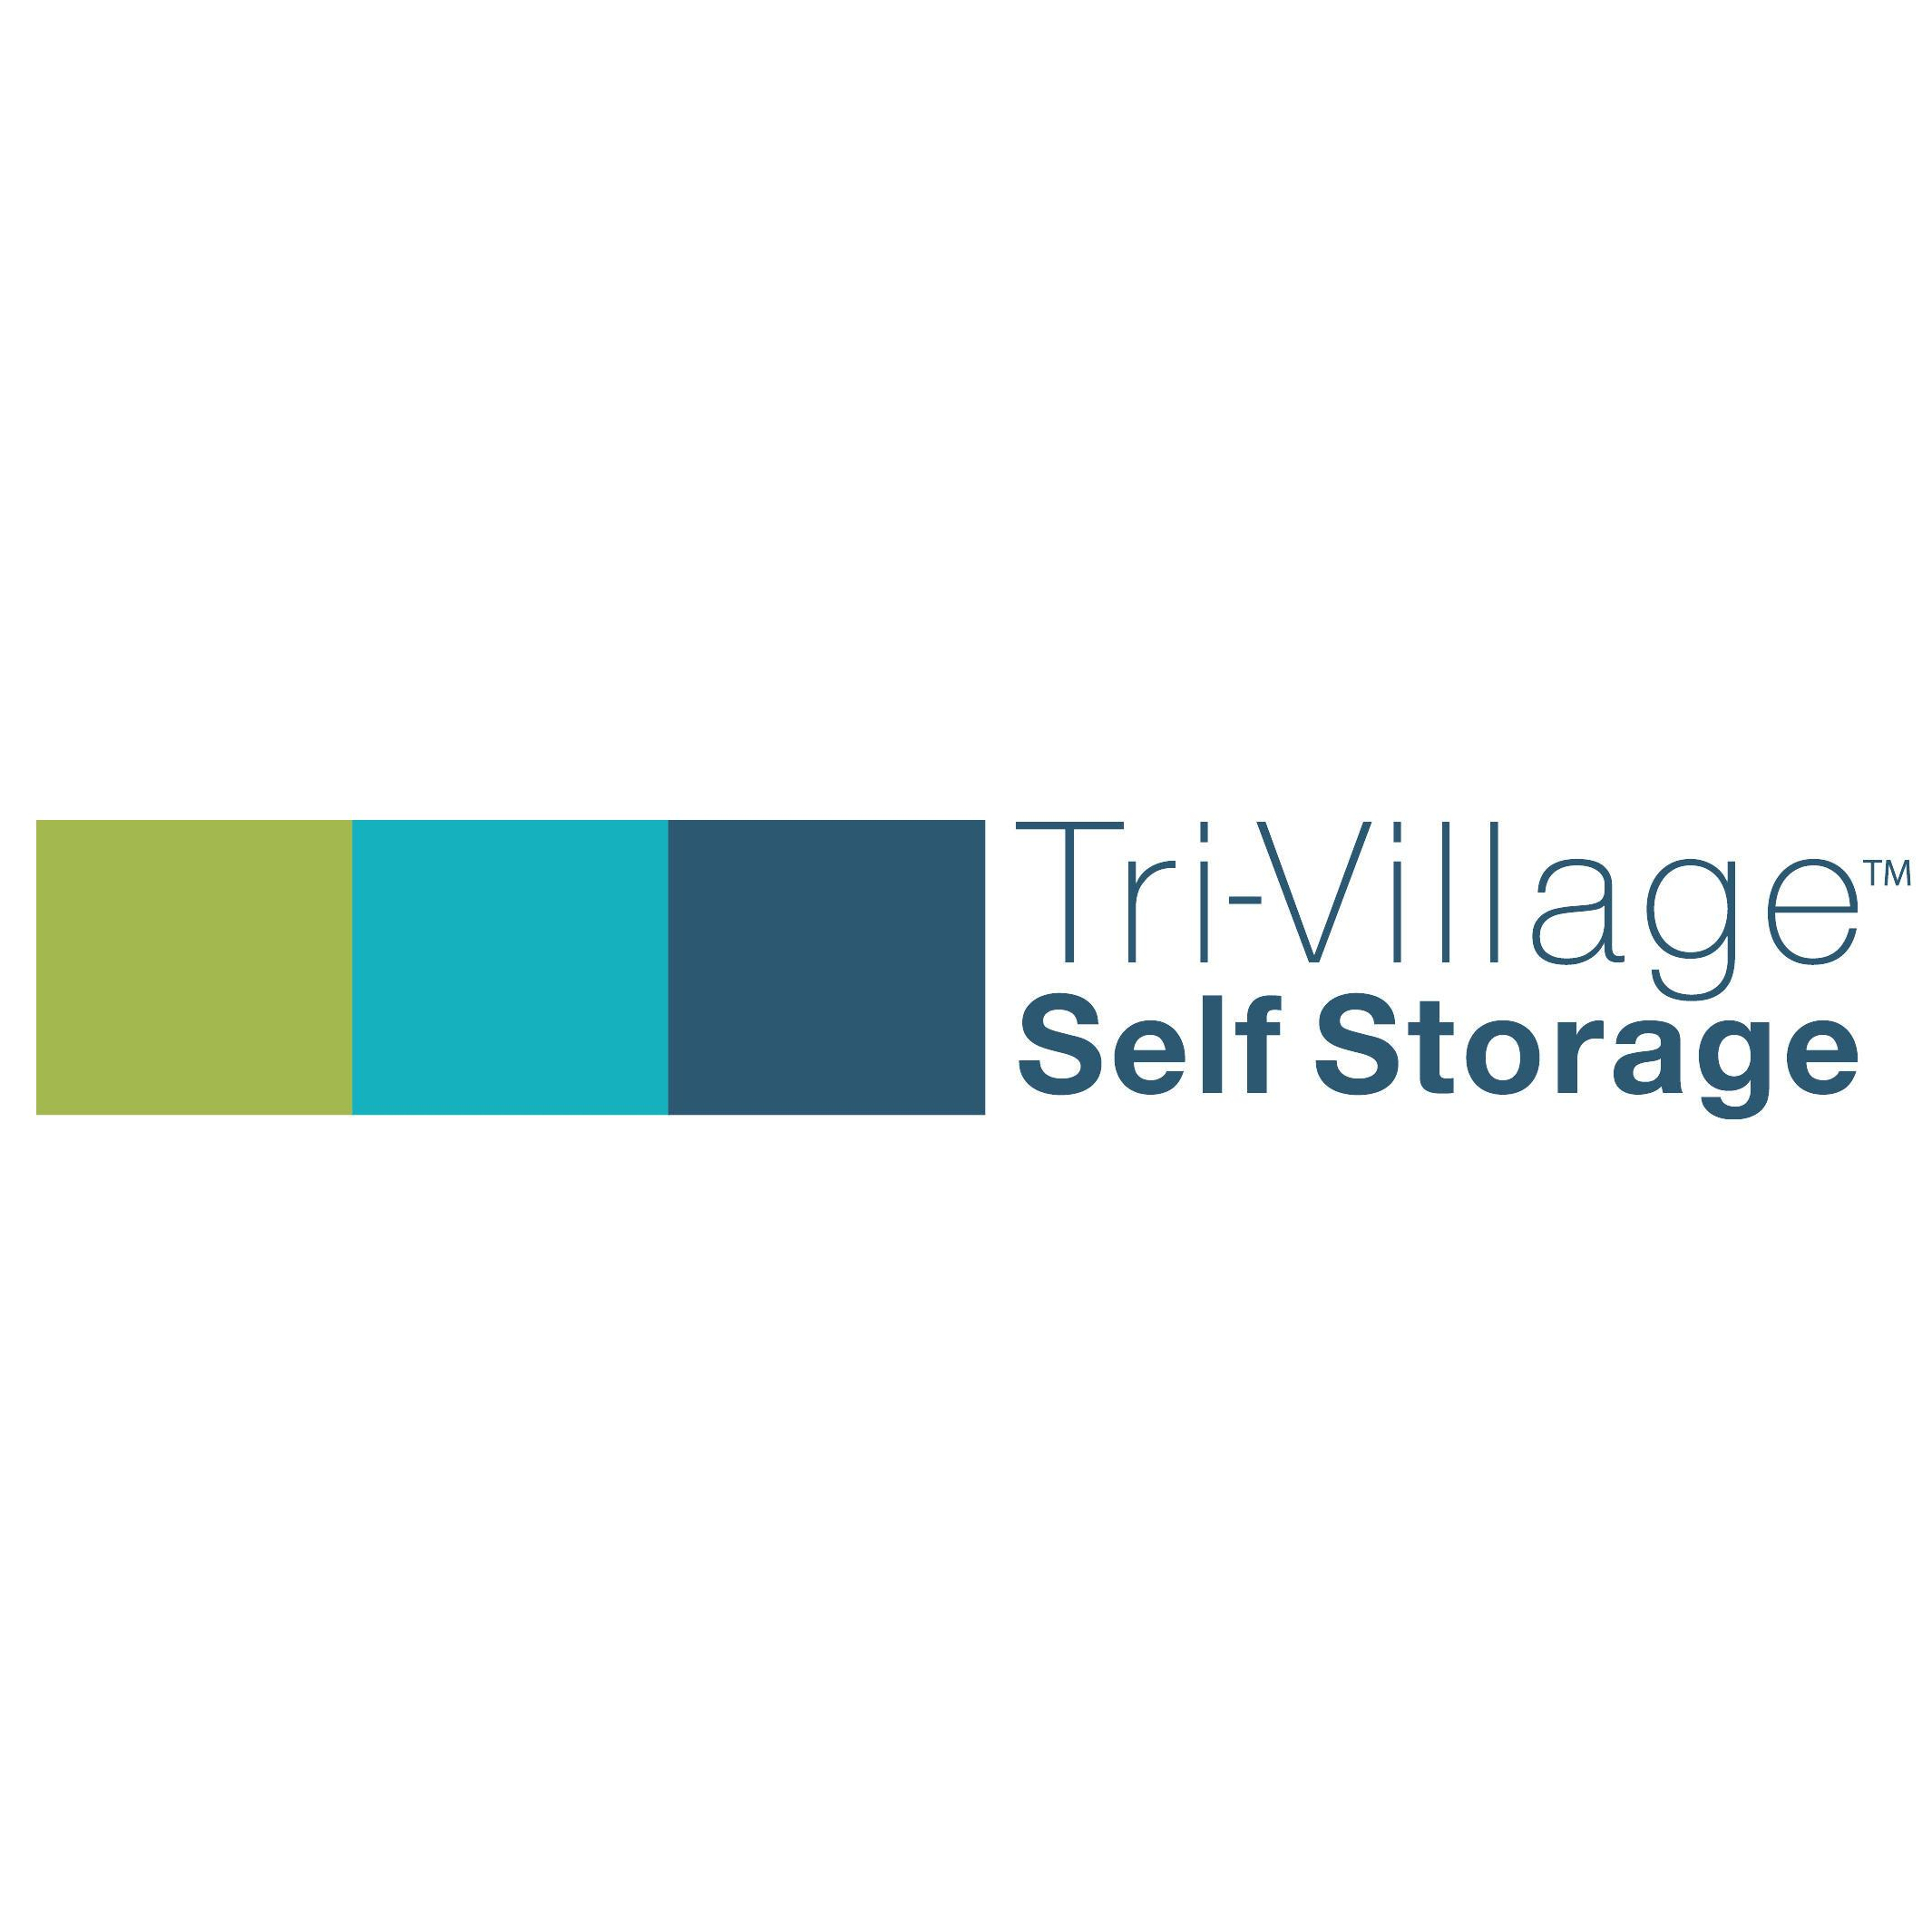 Tri-Village Self Storage image 5